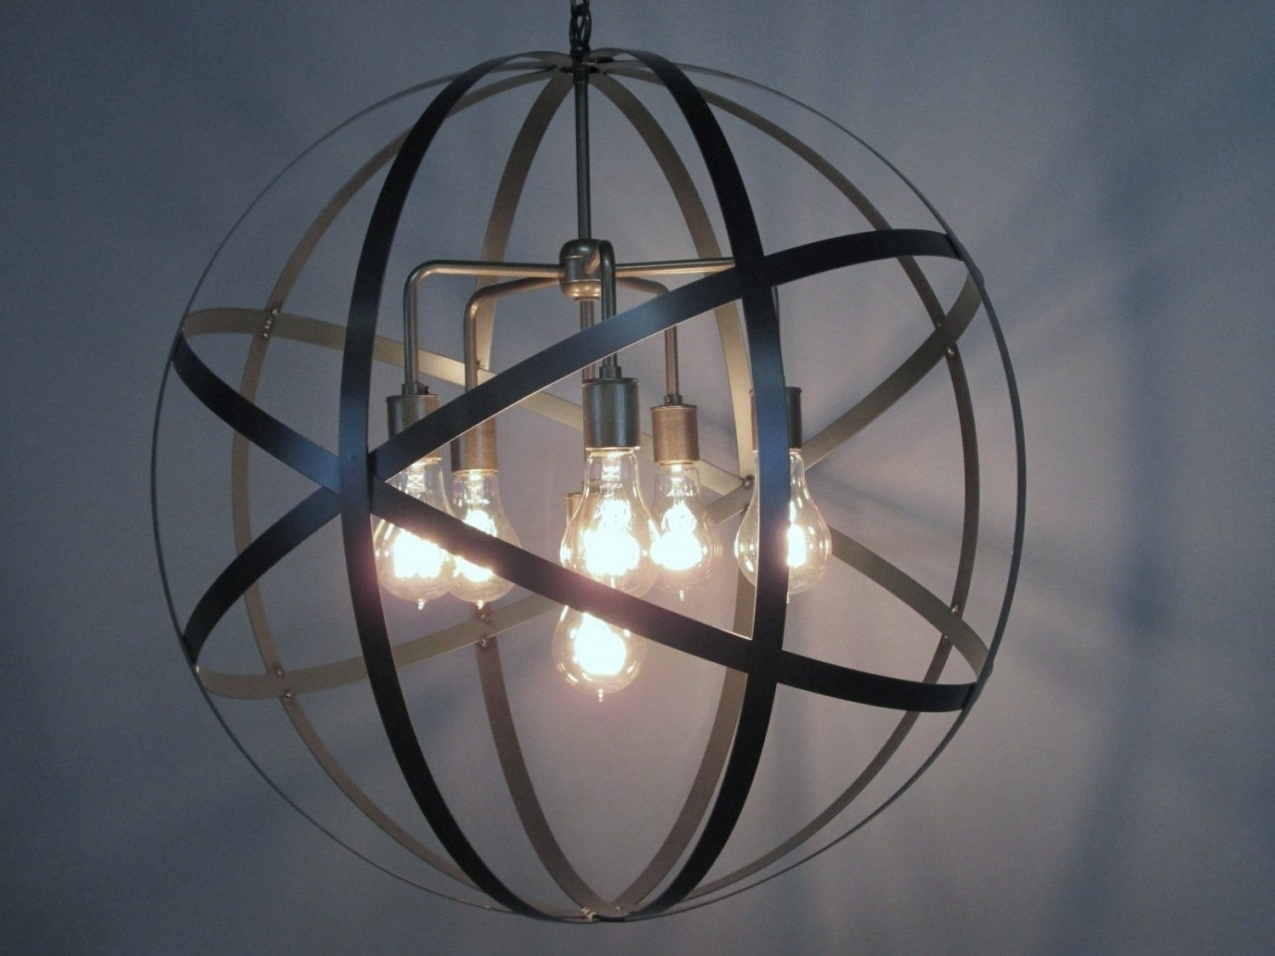 Trendy Orb Chandeliers For Accessories: Globe Metal Design Orb Chandelier With Lights Bulb (View 16 of 20)